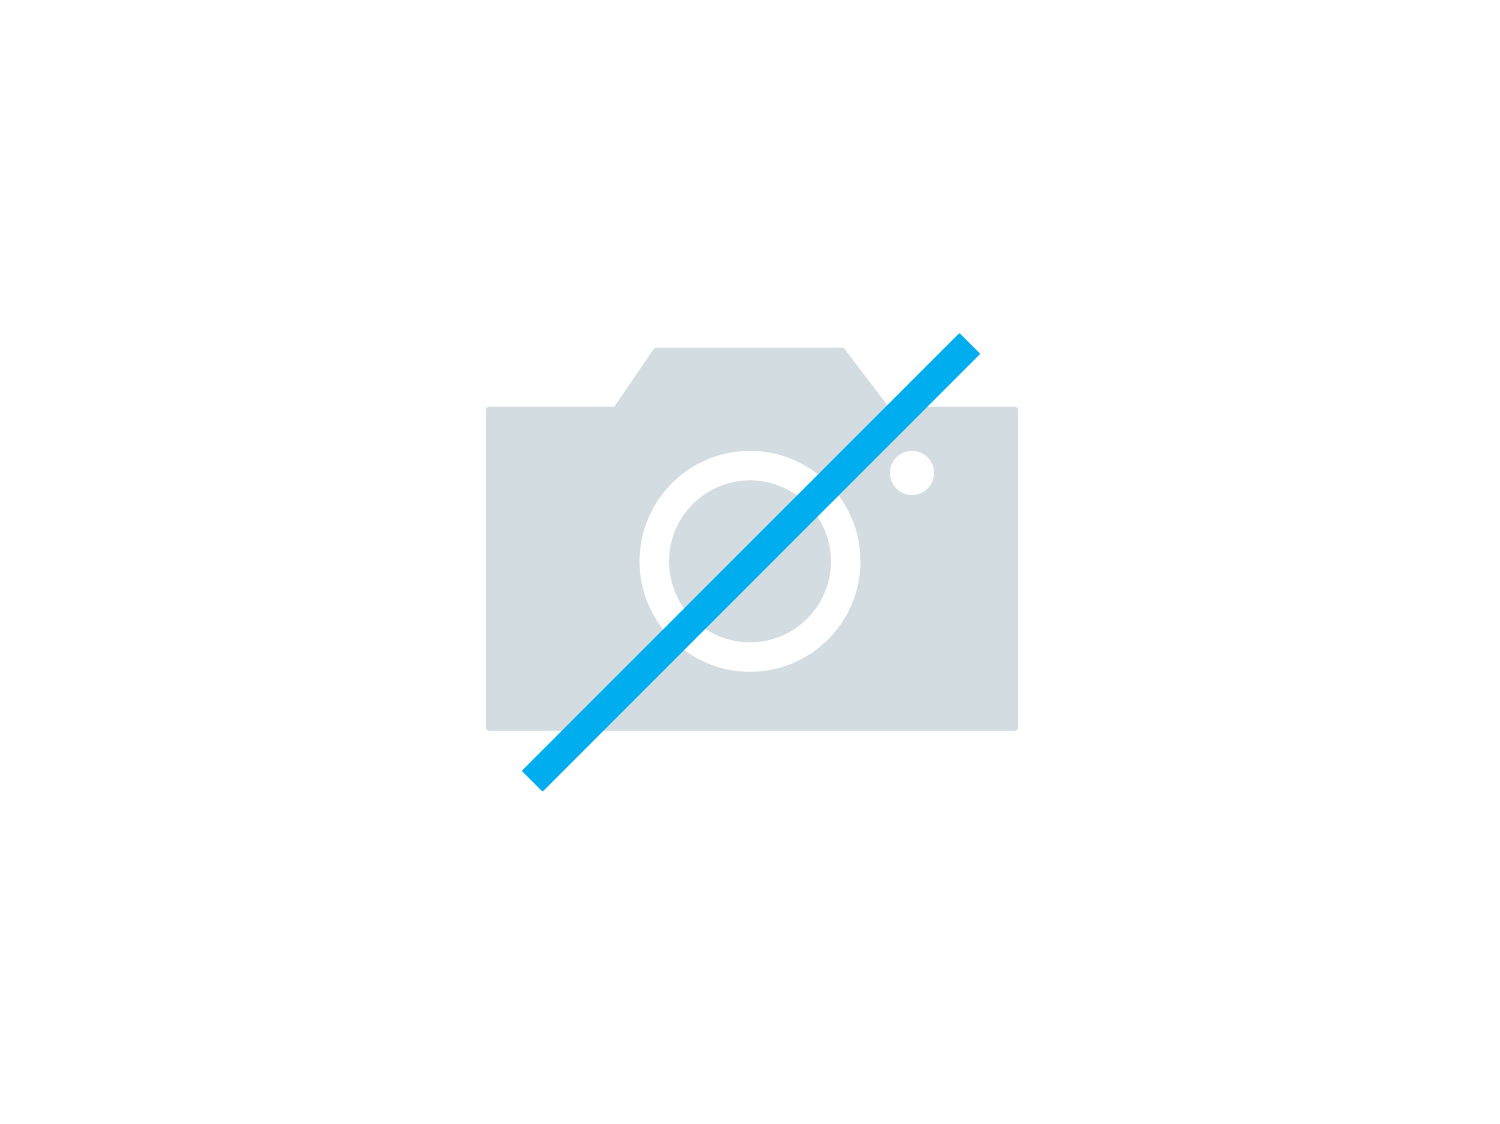 Pedaalemmer New Icon Brabantia 30L grijs